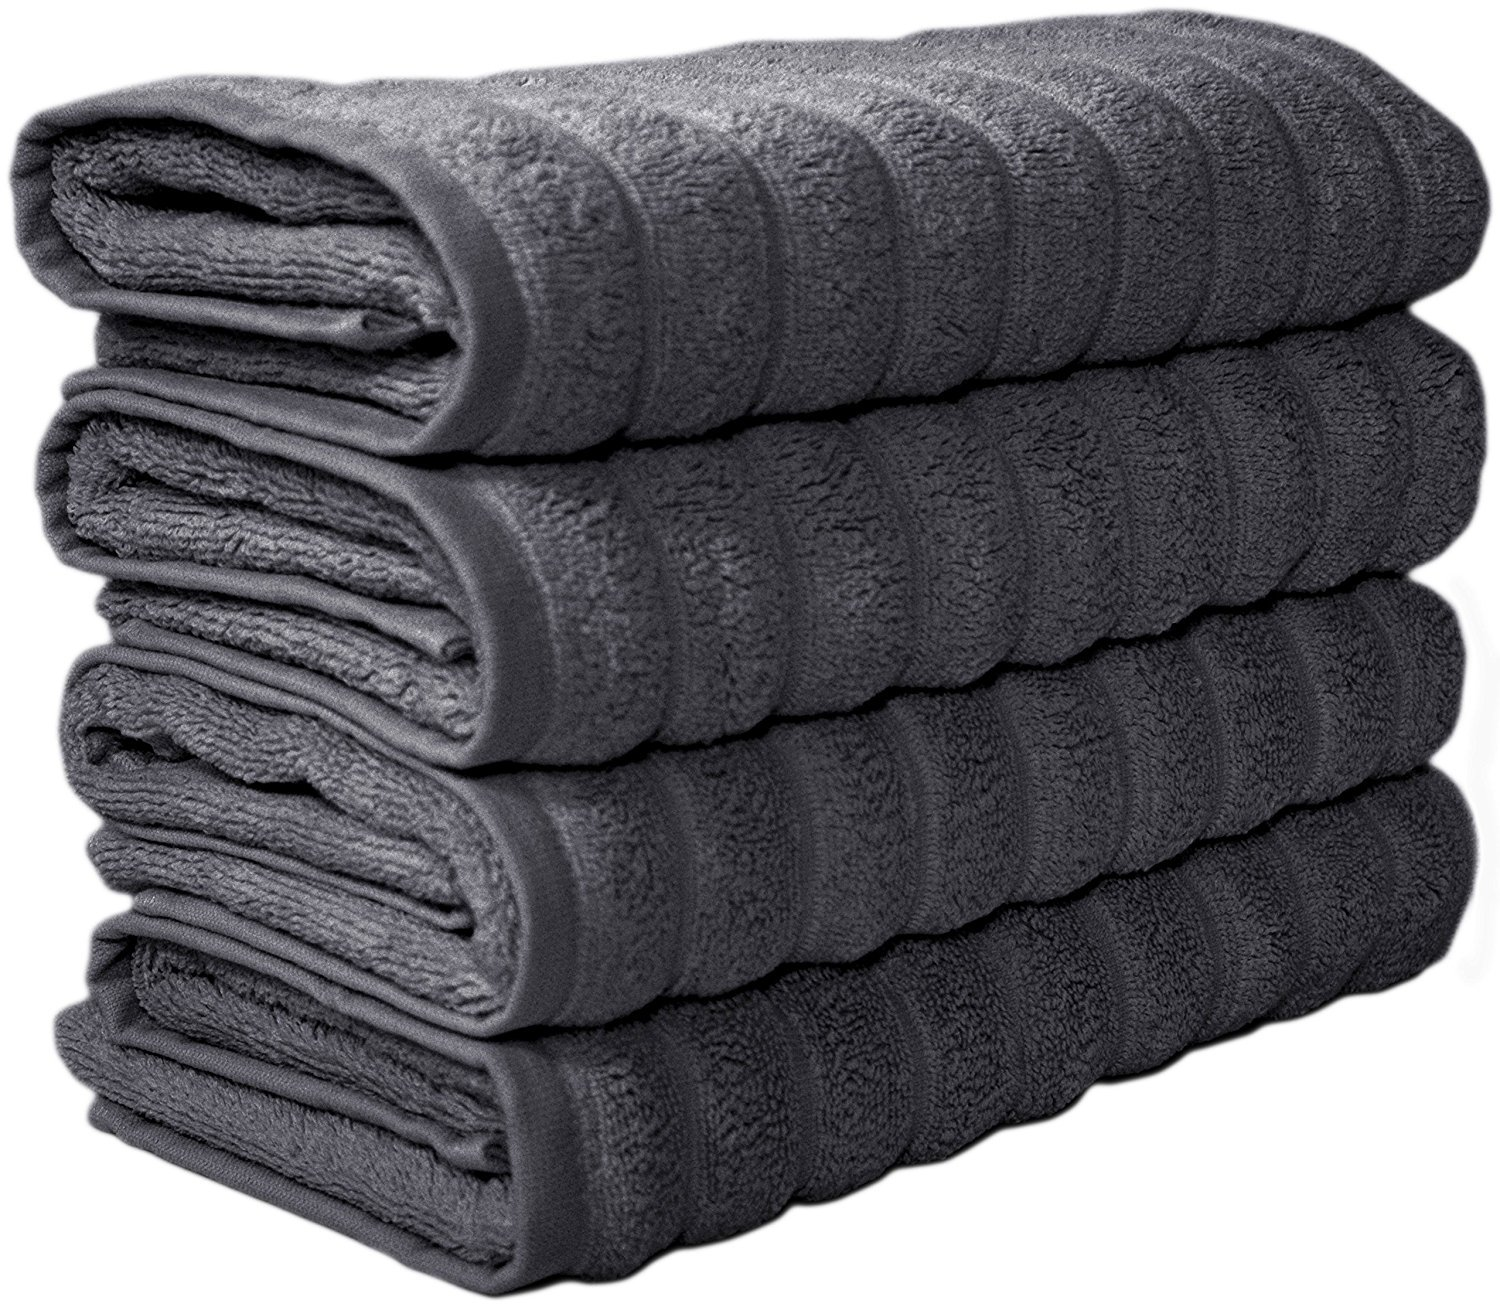 Classic Turkish Towels 4 Piece Hand Towel Set 20 x 32 inch - Luxury Wedding Towels Made With 100% Turkish Cotton, Jacquard Rib Style (Grey)